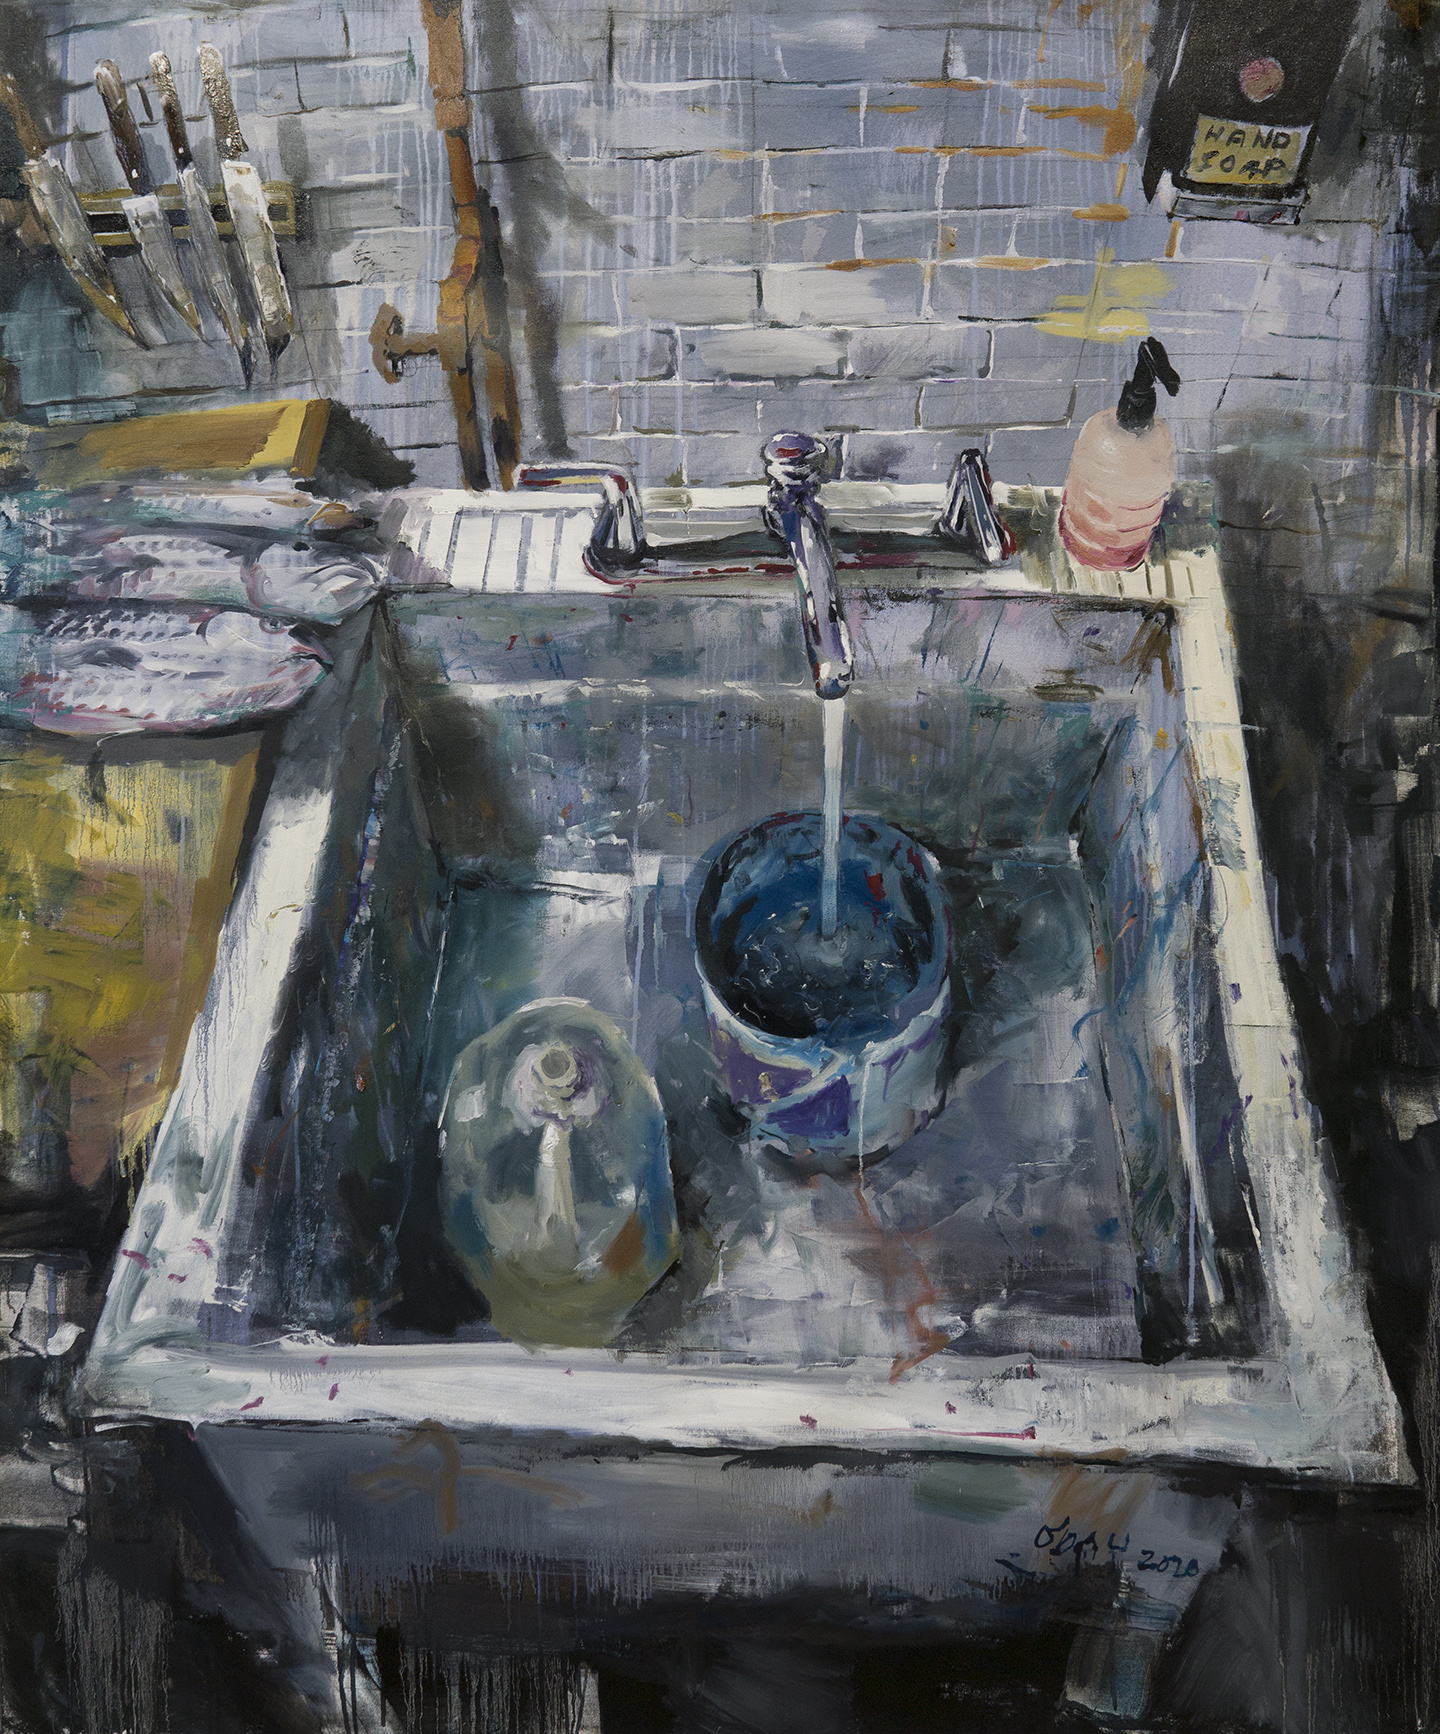 "Slop Sink, oil on canvas, 58x44"", 2020"